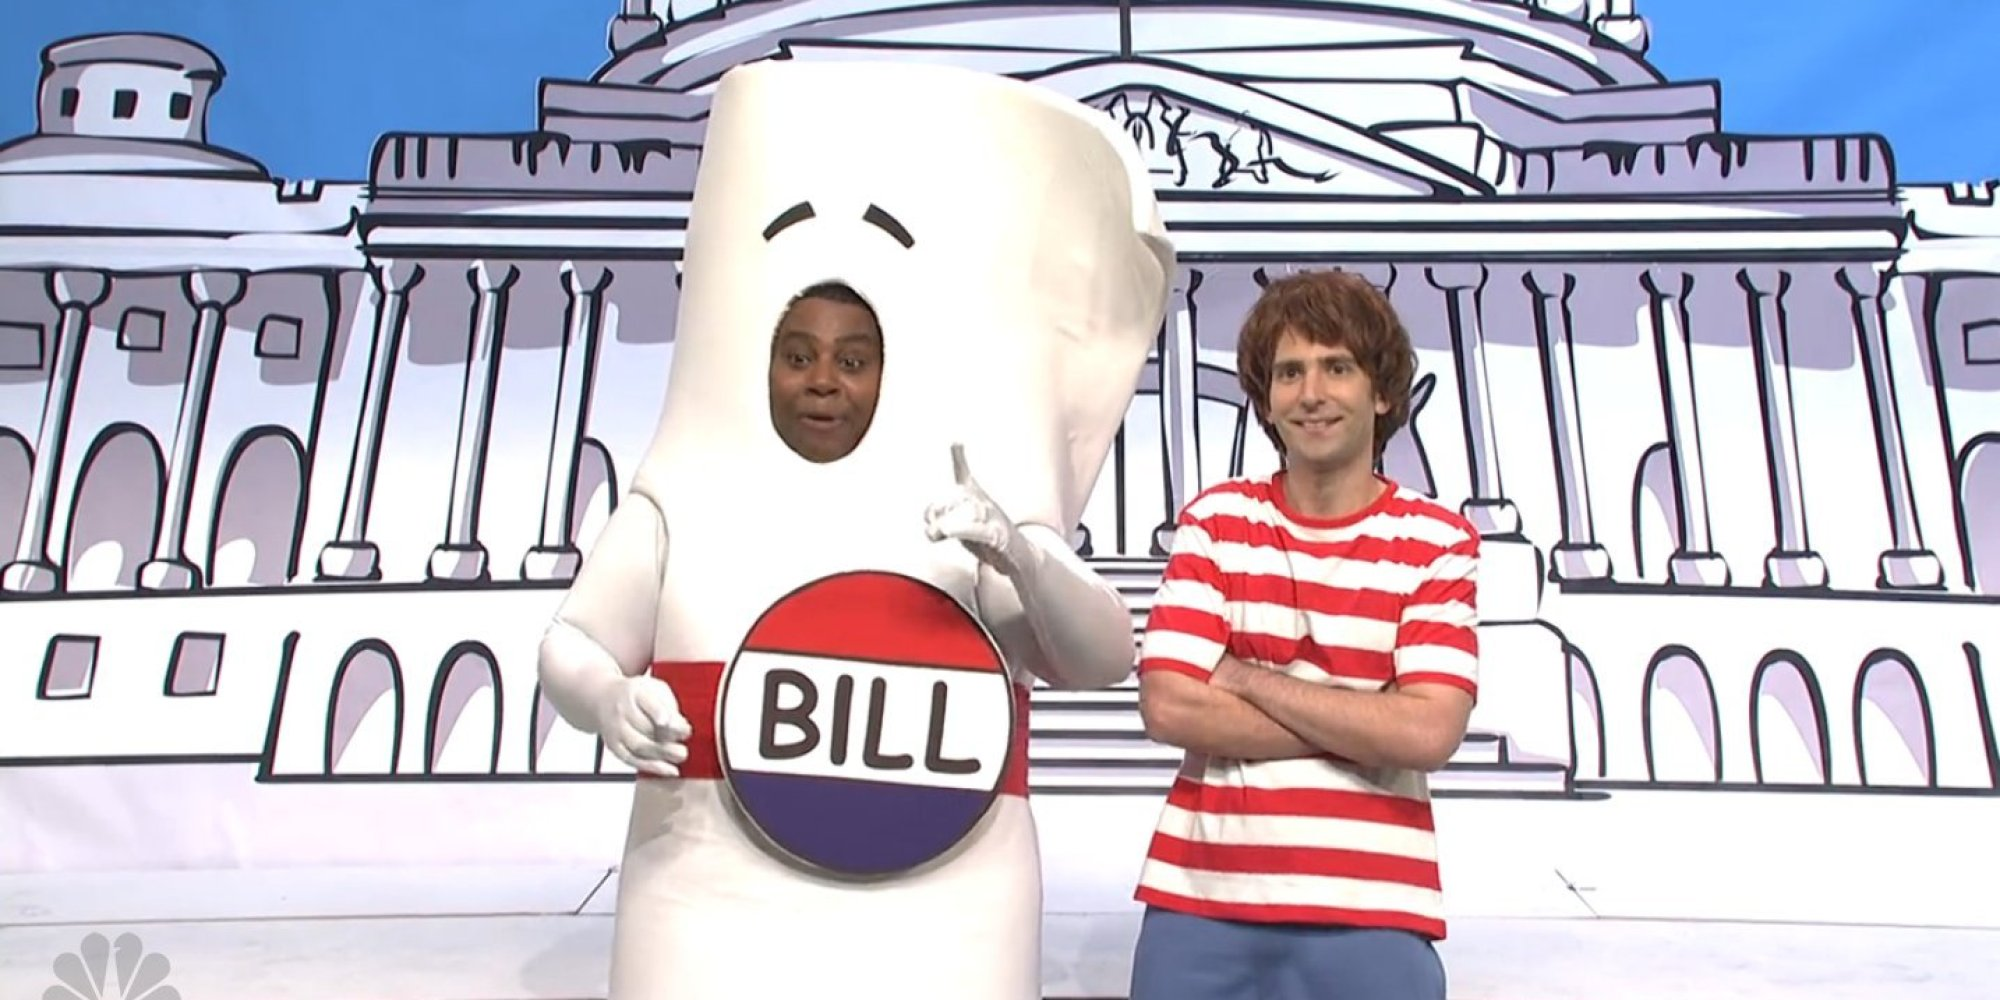 Snl Spoofs Obama Immigration With Schoolhouse Rock